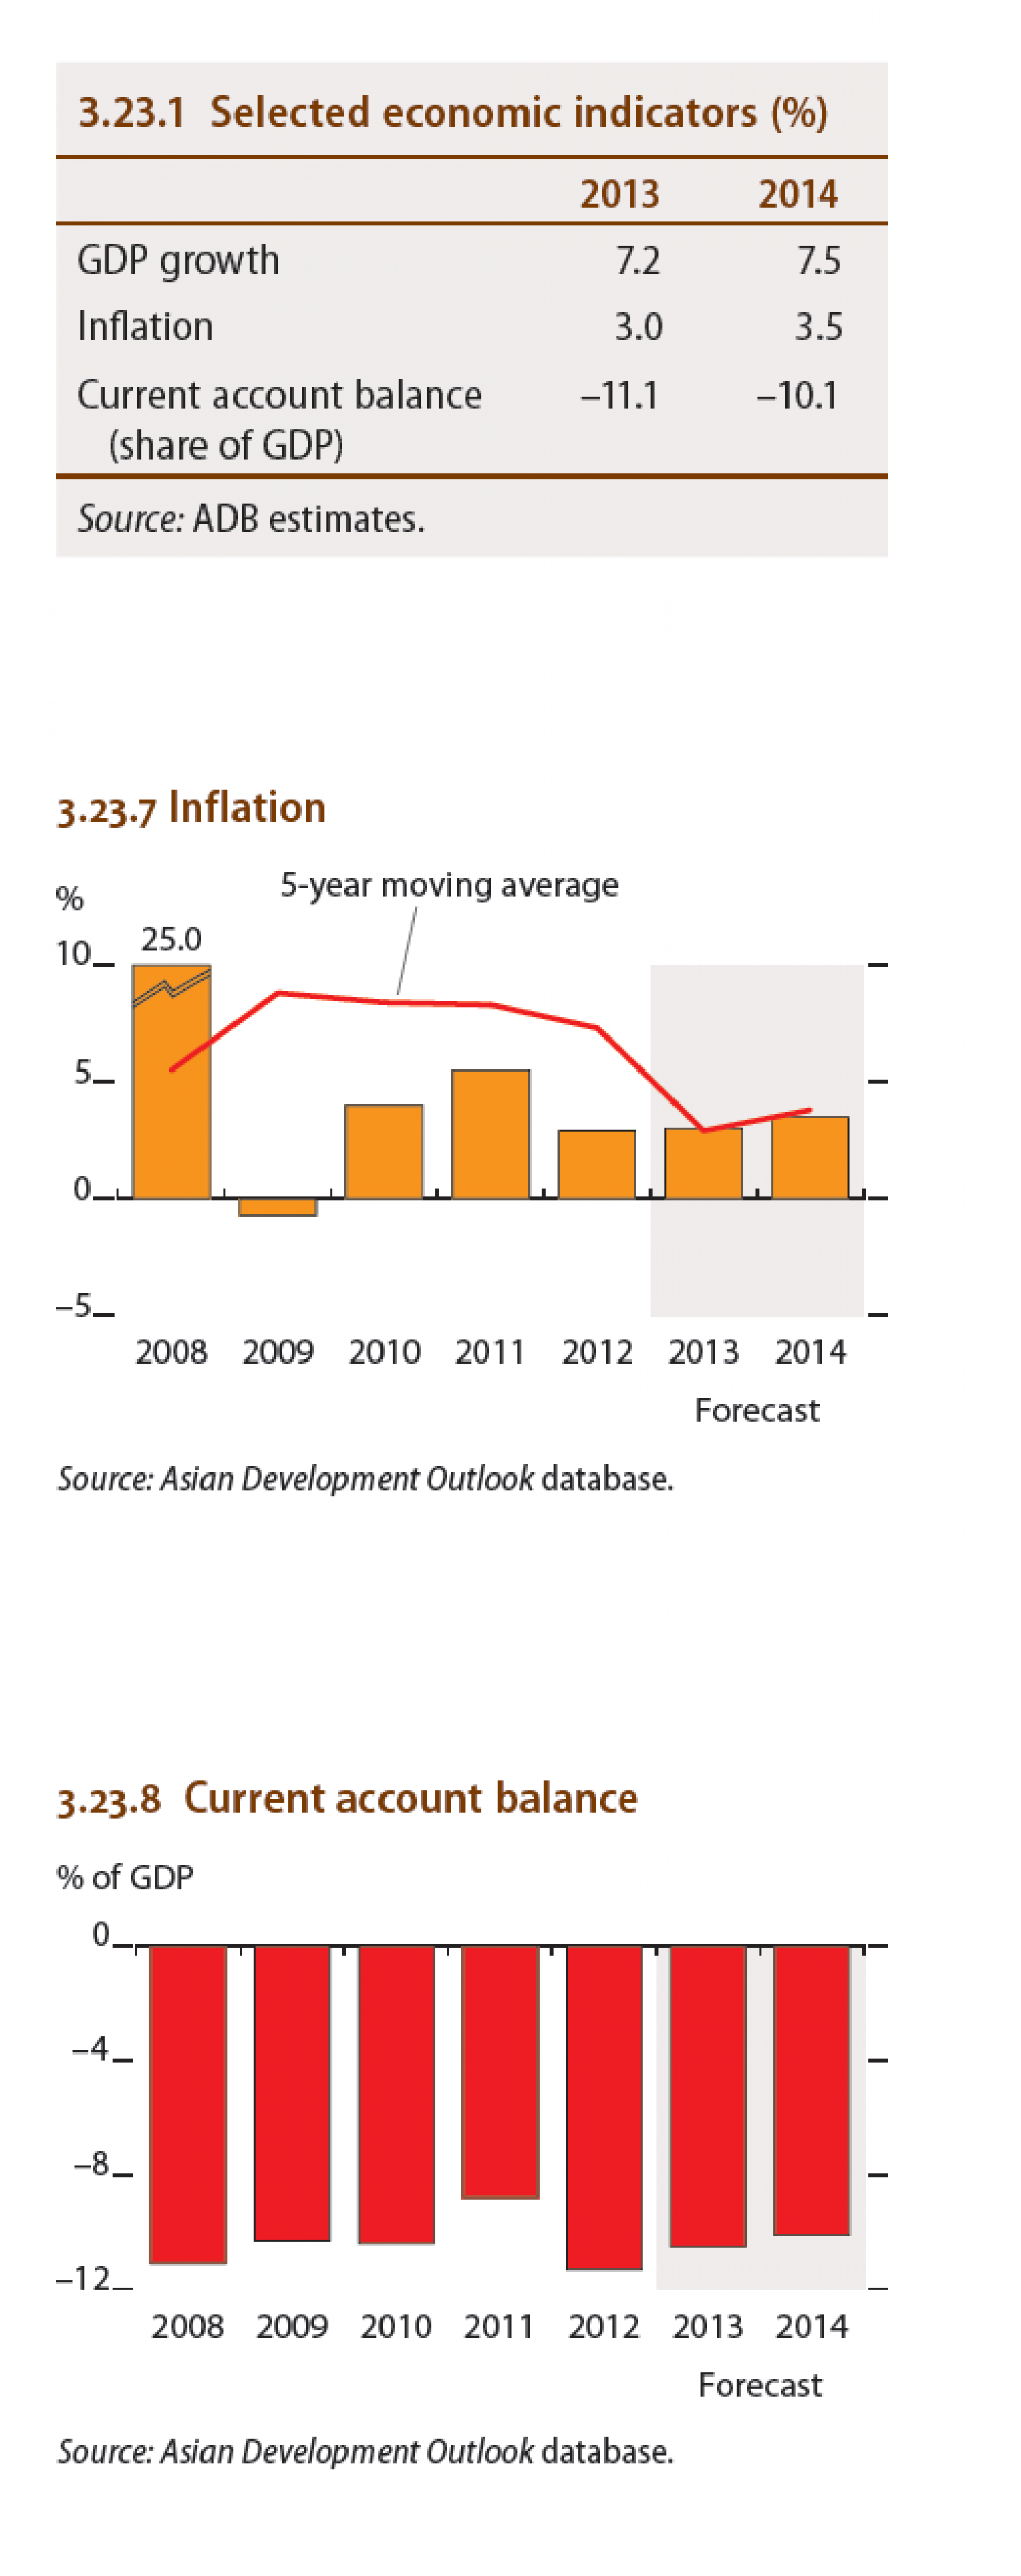 Cambodia - Selected economic indicators (%), Inflation Infographic